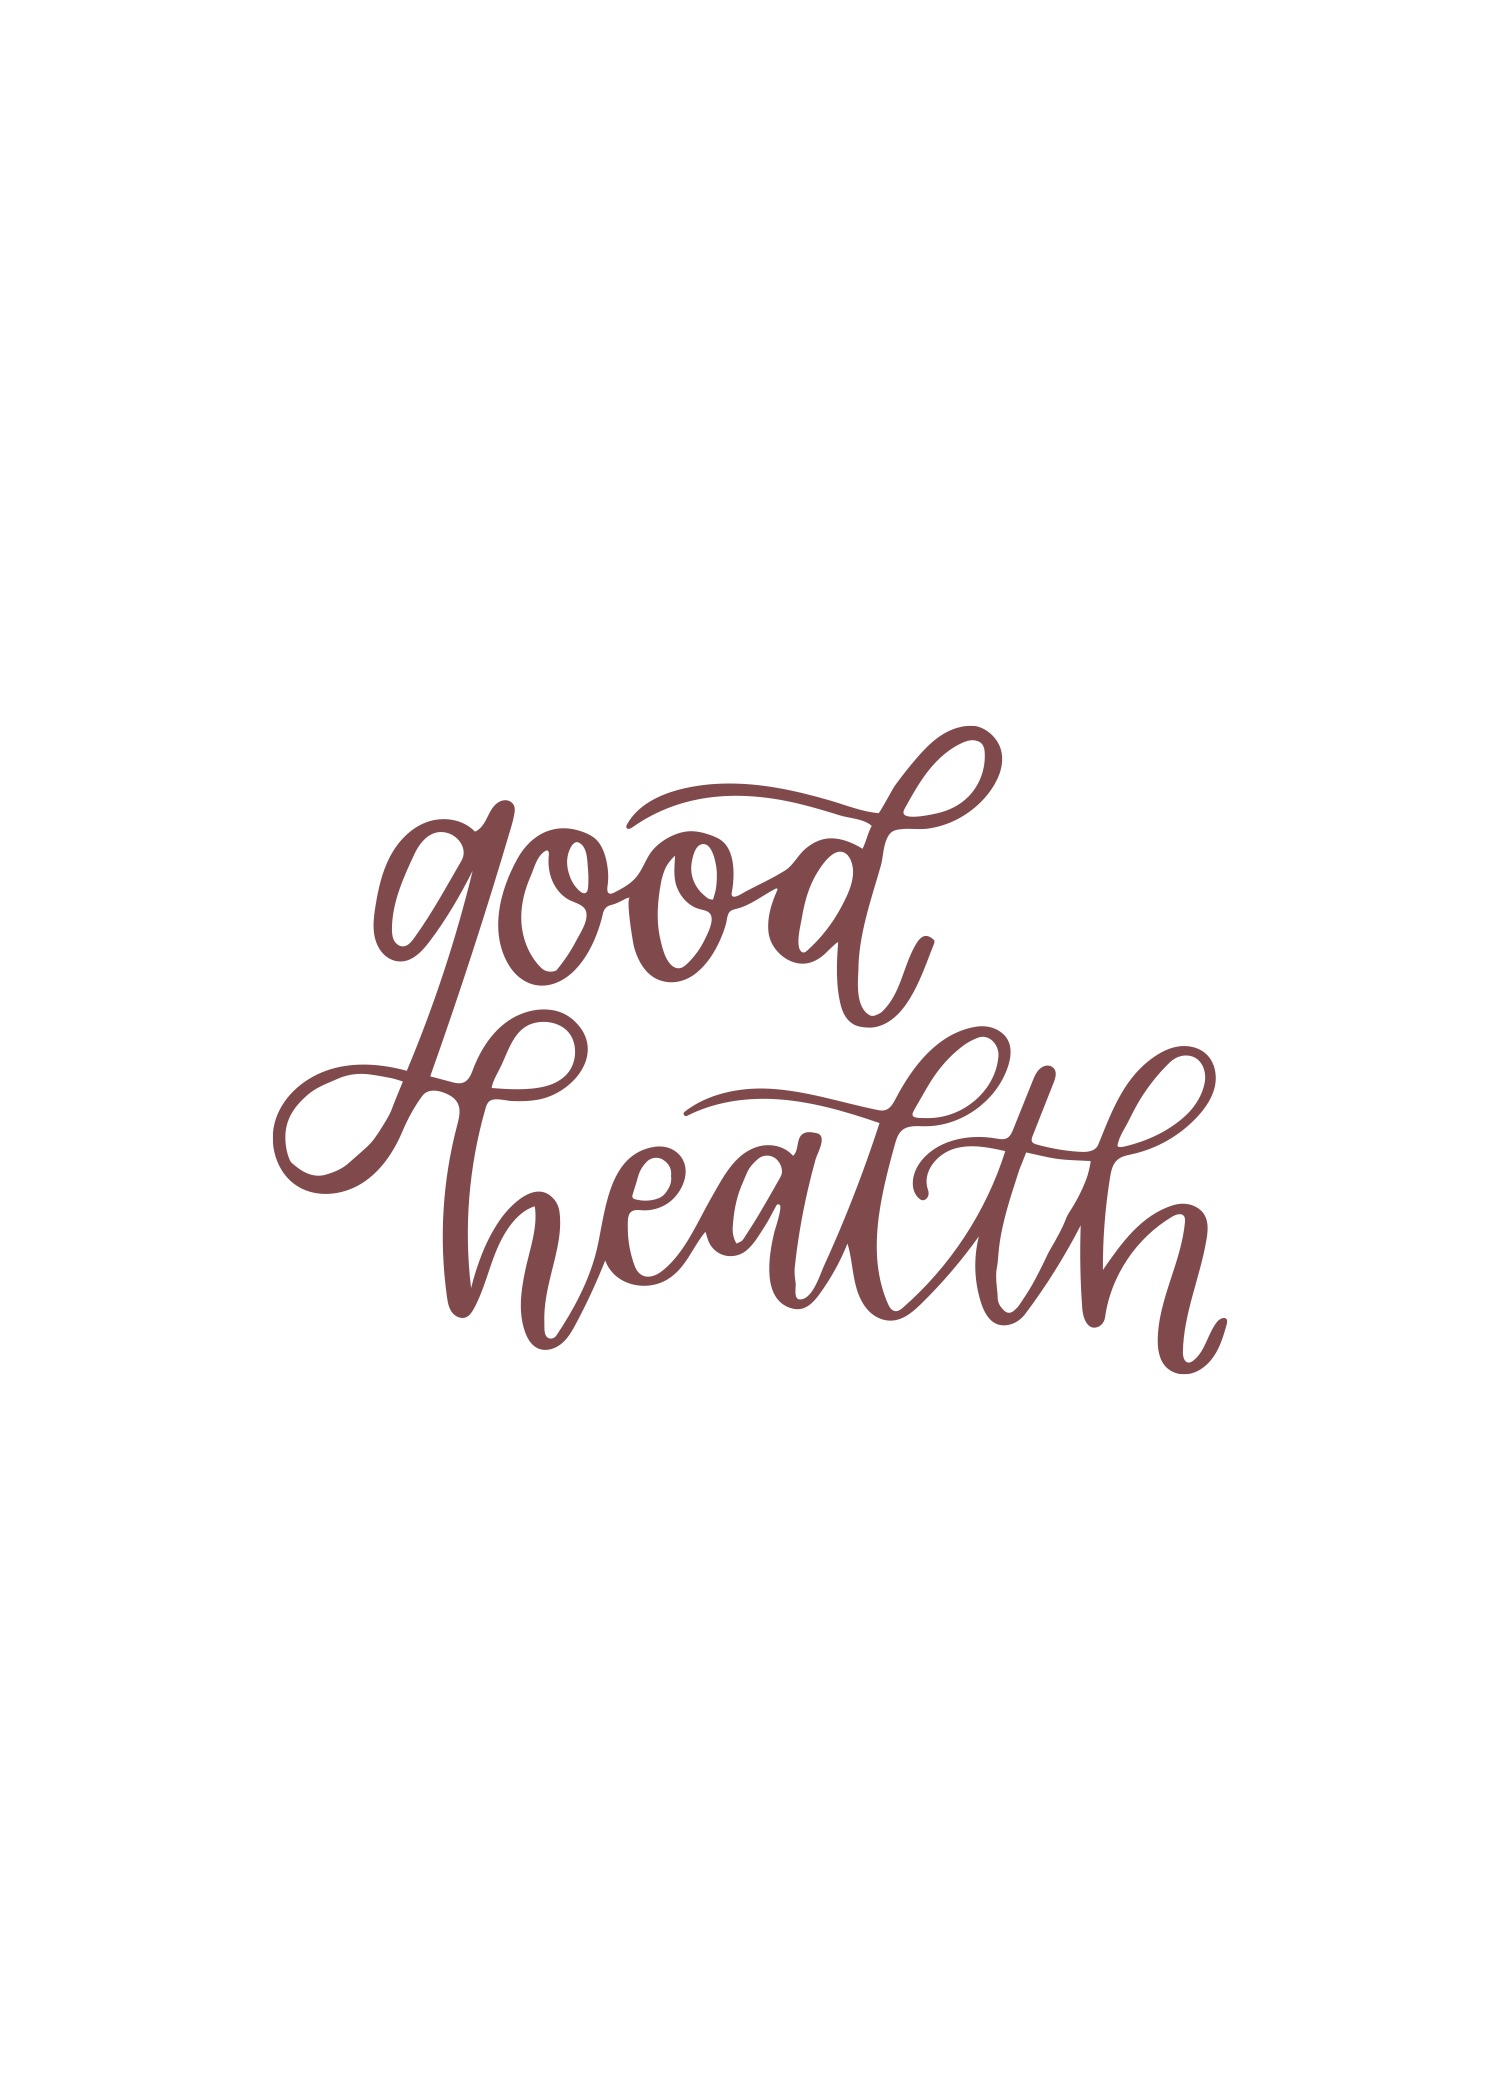 good health in calligraphy